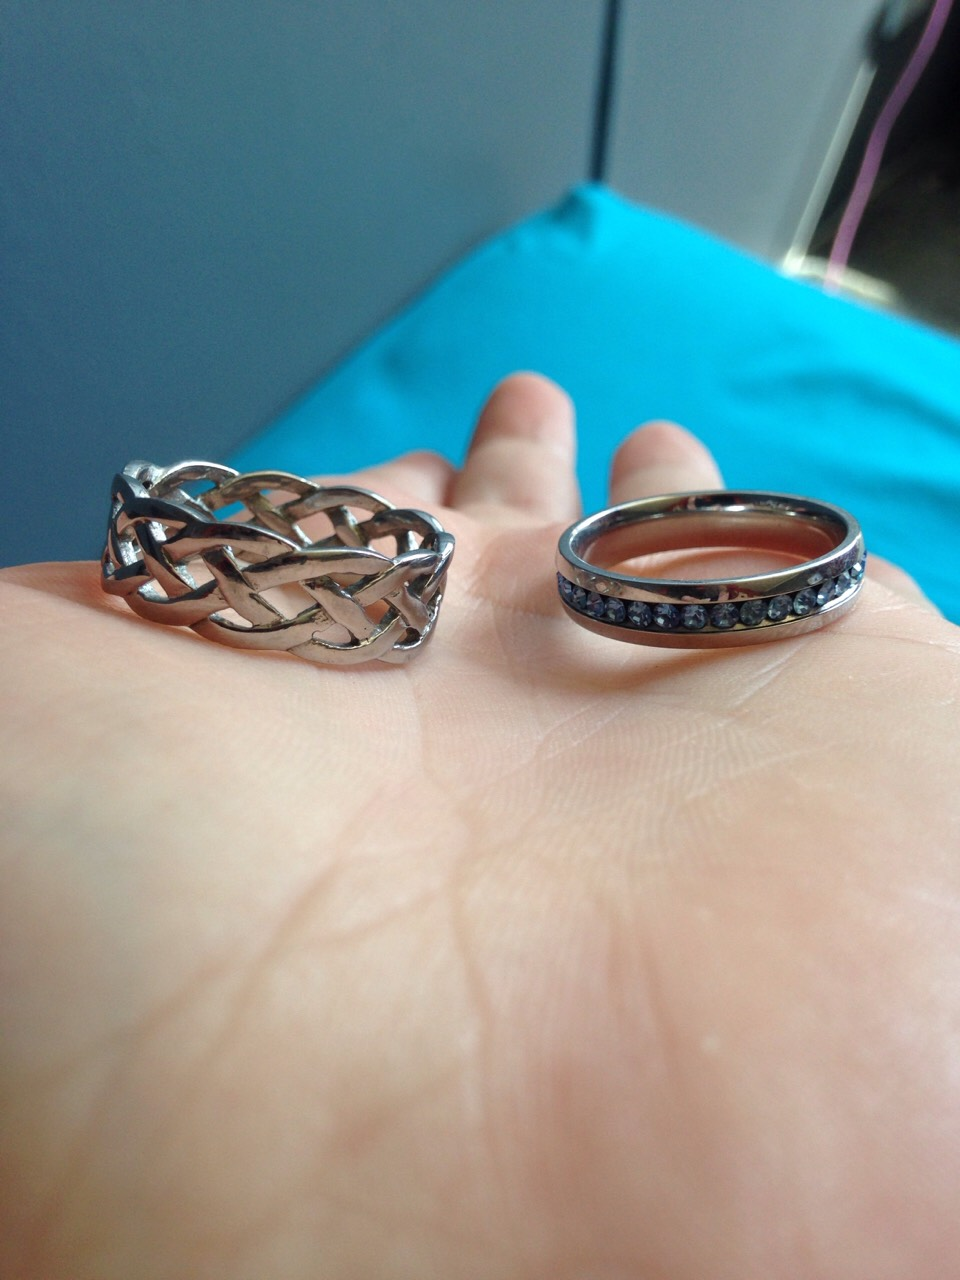 These are my rings. The braided one is 2 sizes to big and the regular jewel one is the correct size. I'm in love with the braided ring so I was set to keep it and wear it. This is how I did it.